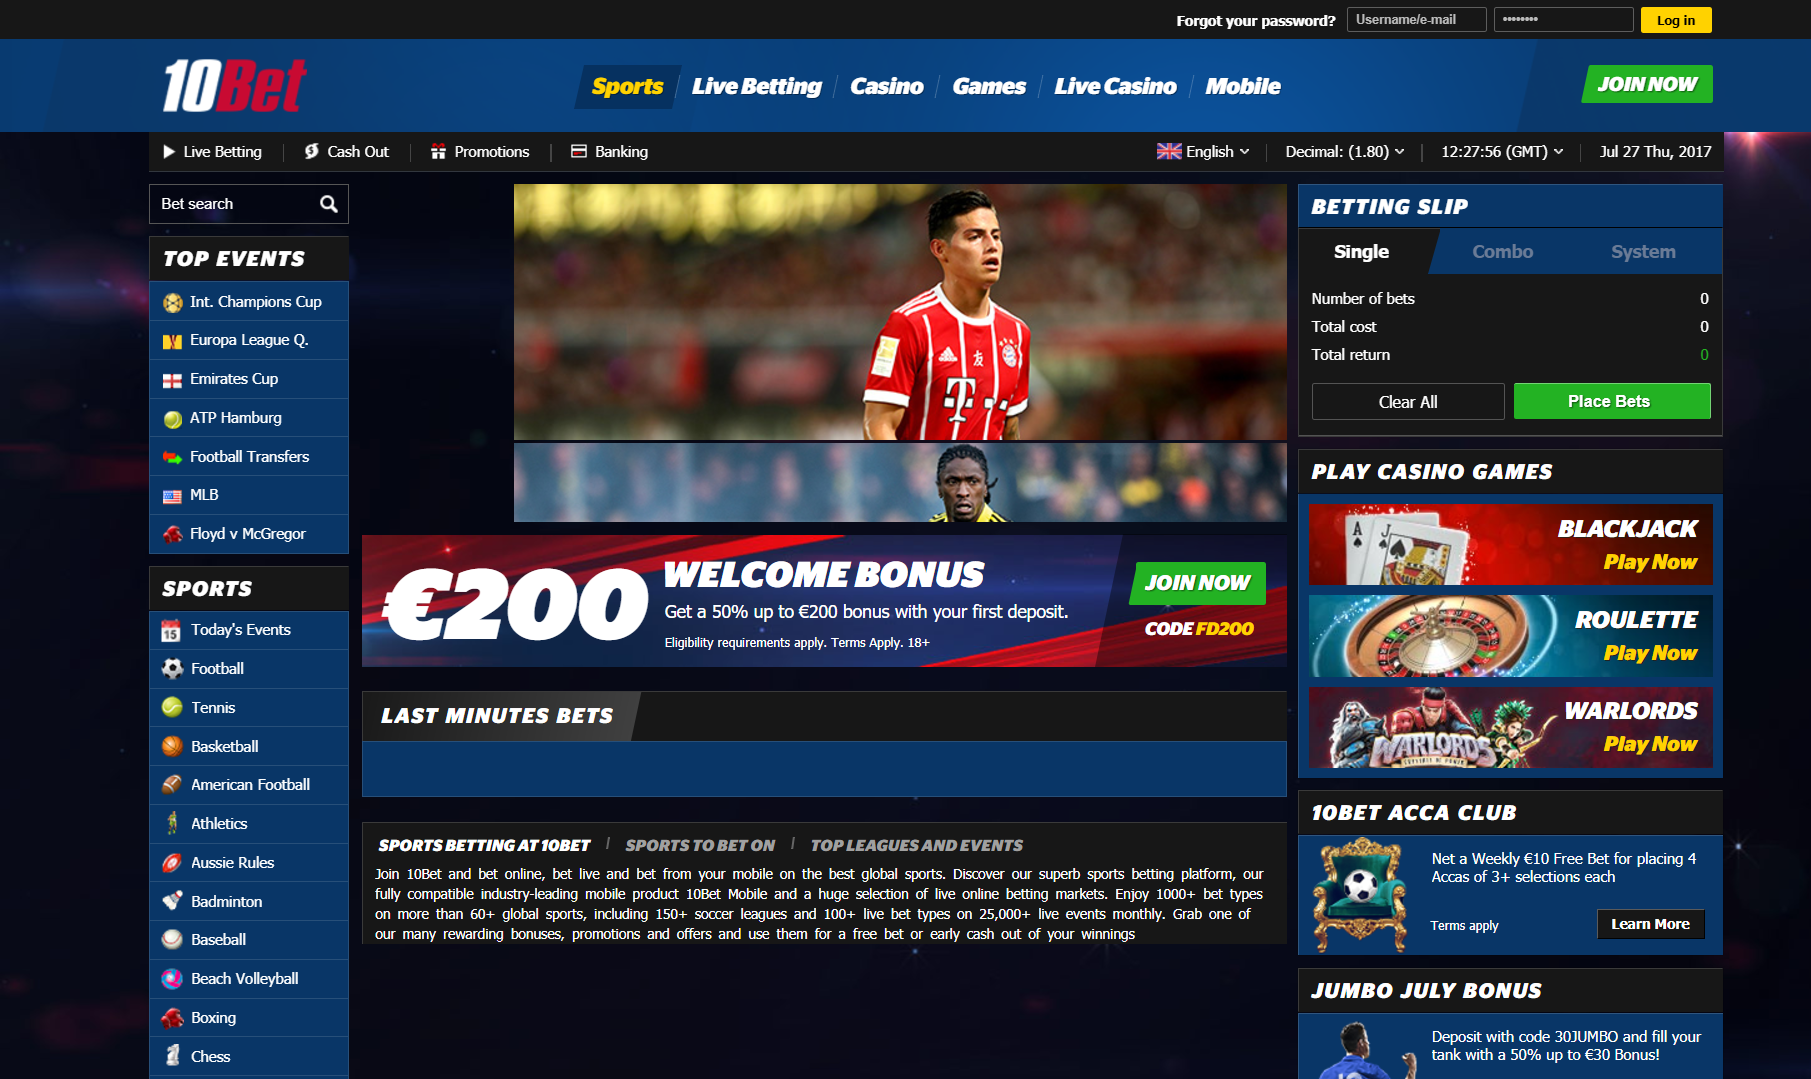 10bet_HomePage.png